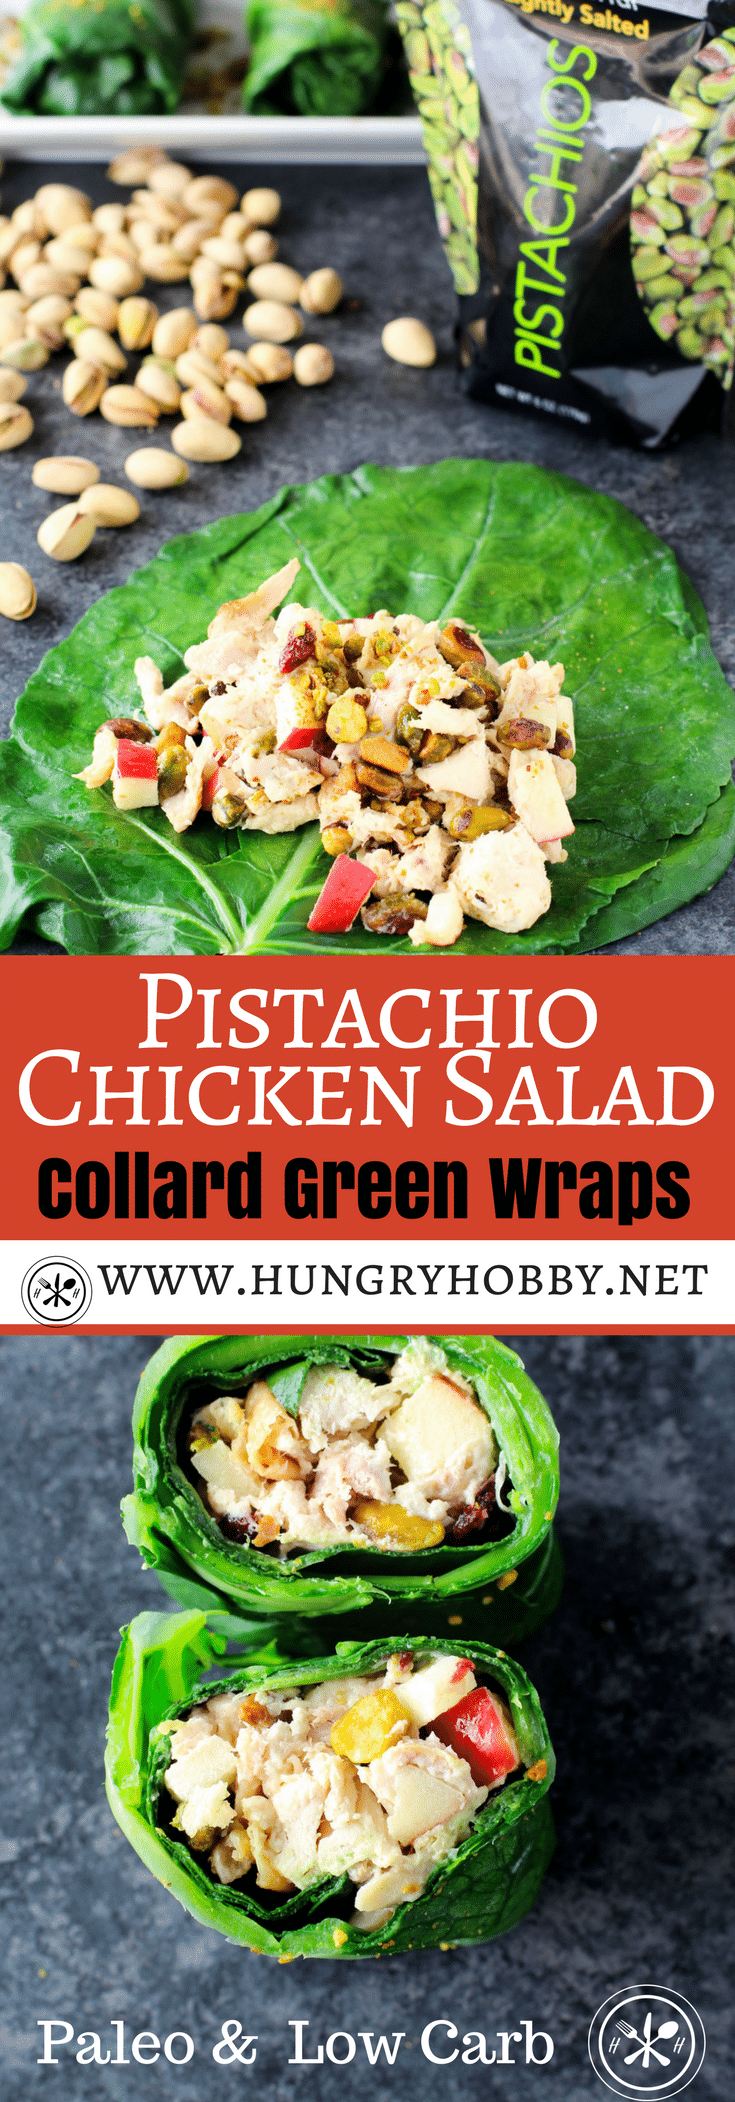 Creamy chicken salad with crunchy salty pistachios, wrapped in a crisp low carb collard green wrap. #sponsored #reciperedux #hungryhobby #paleo #lowcarb #getcrackin